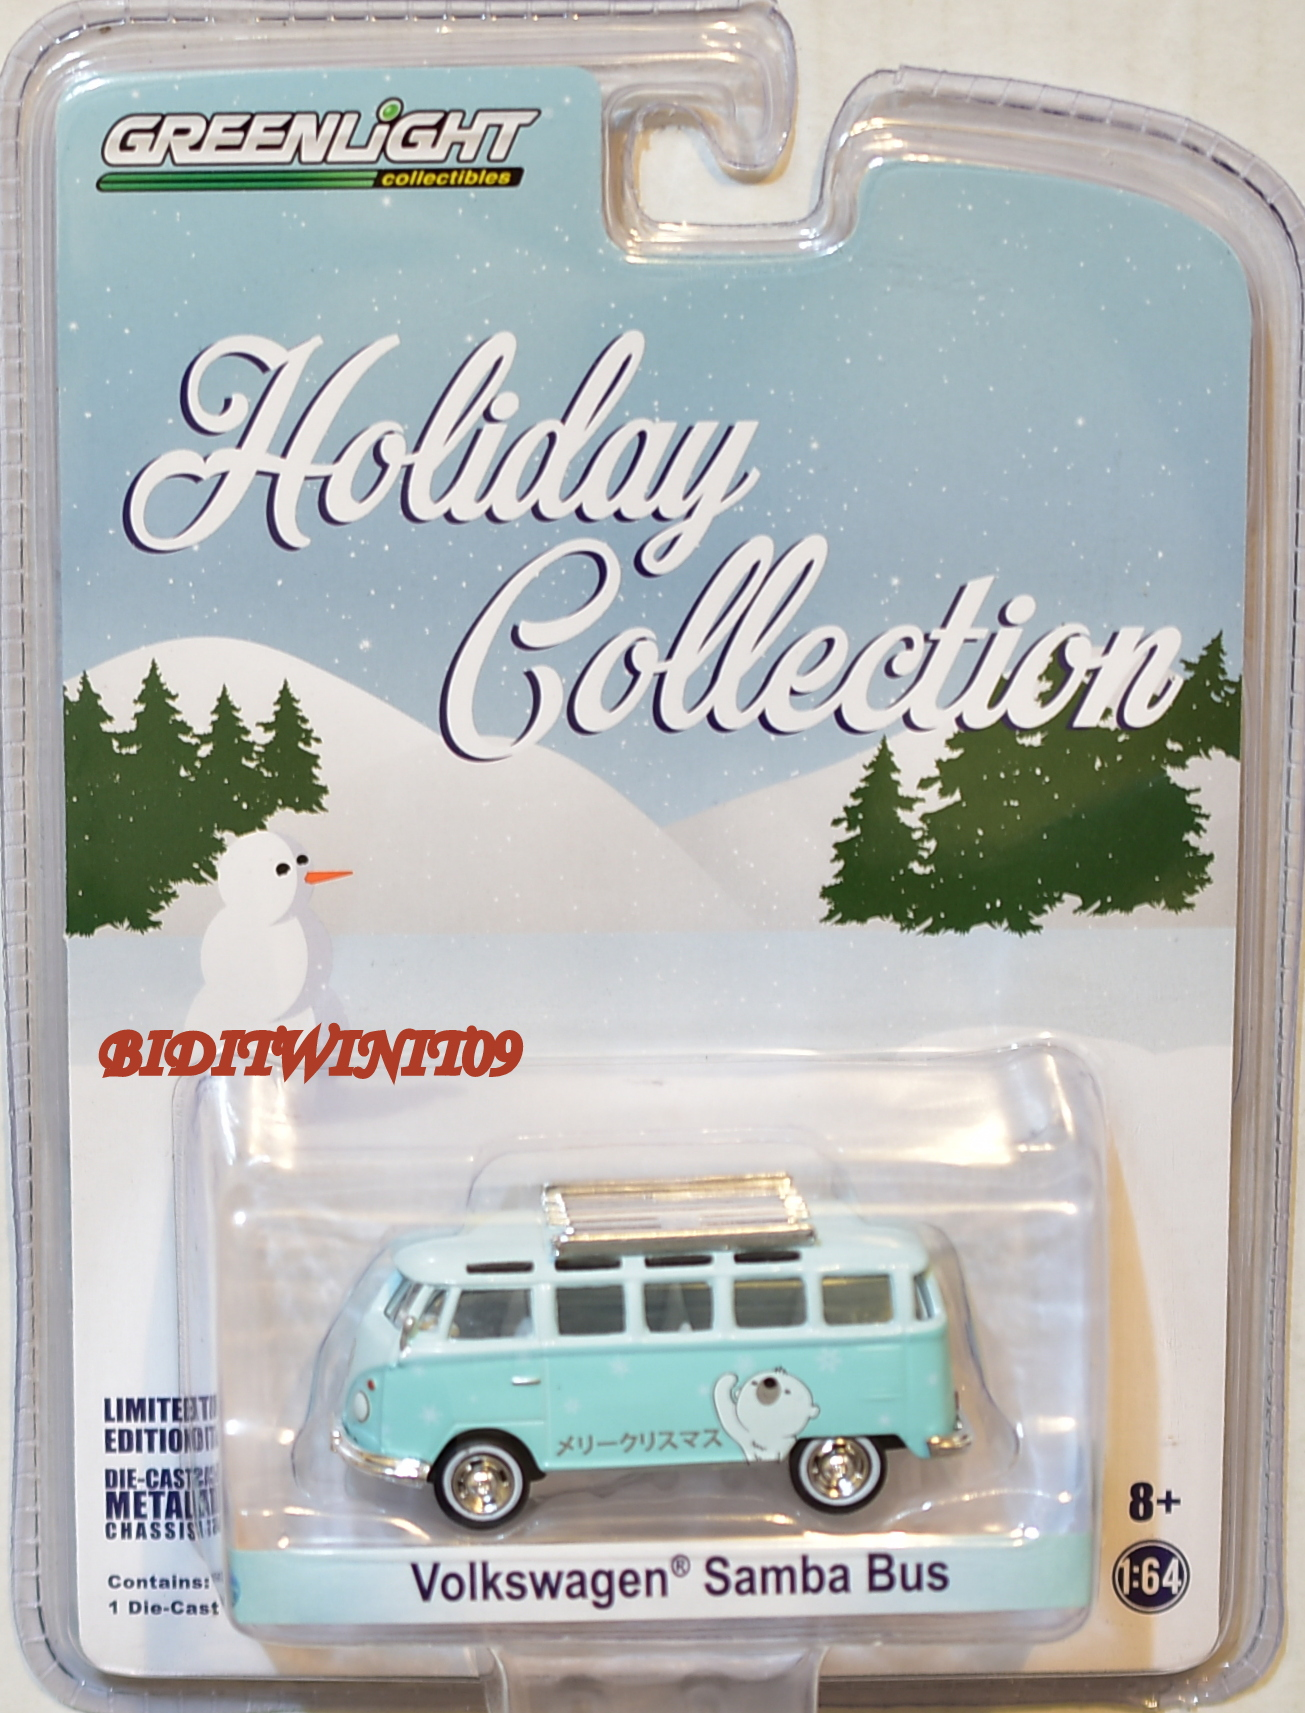 GREENLIGHT HOLIDAY COLLECTION VOLKSWAGEN SAMBA BUS